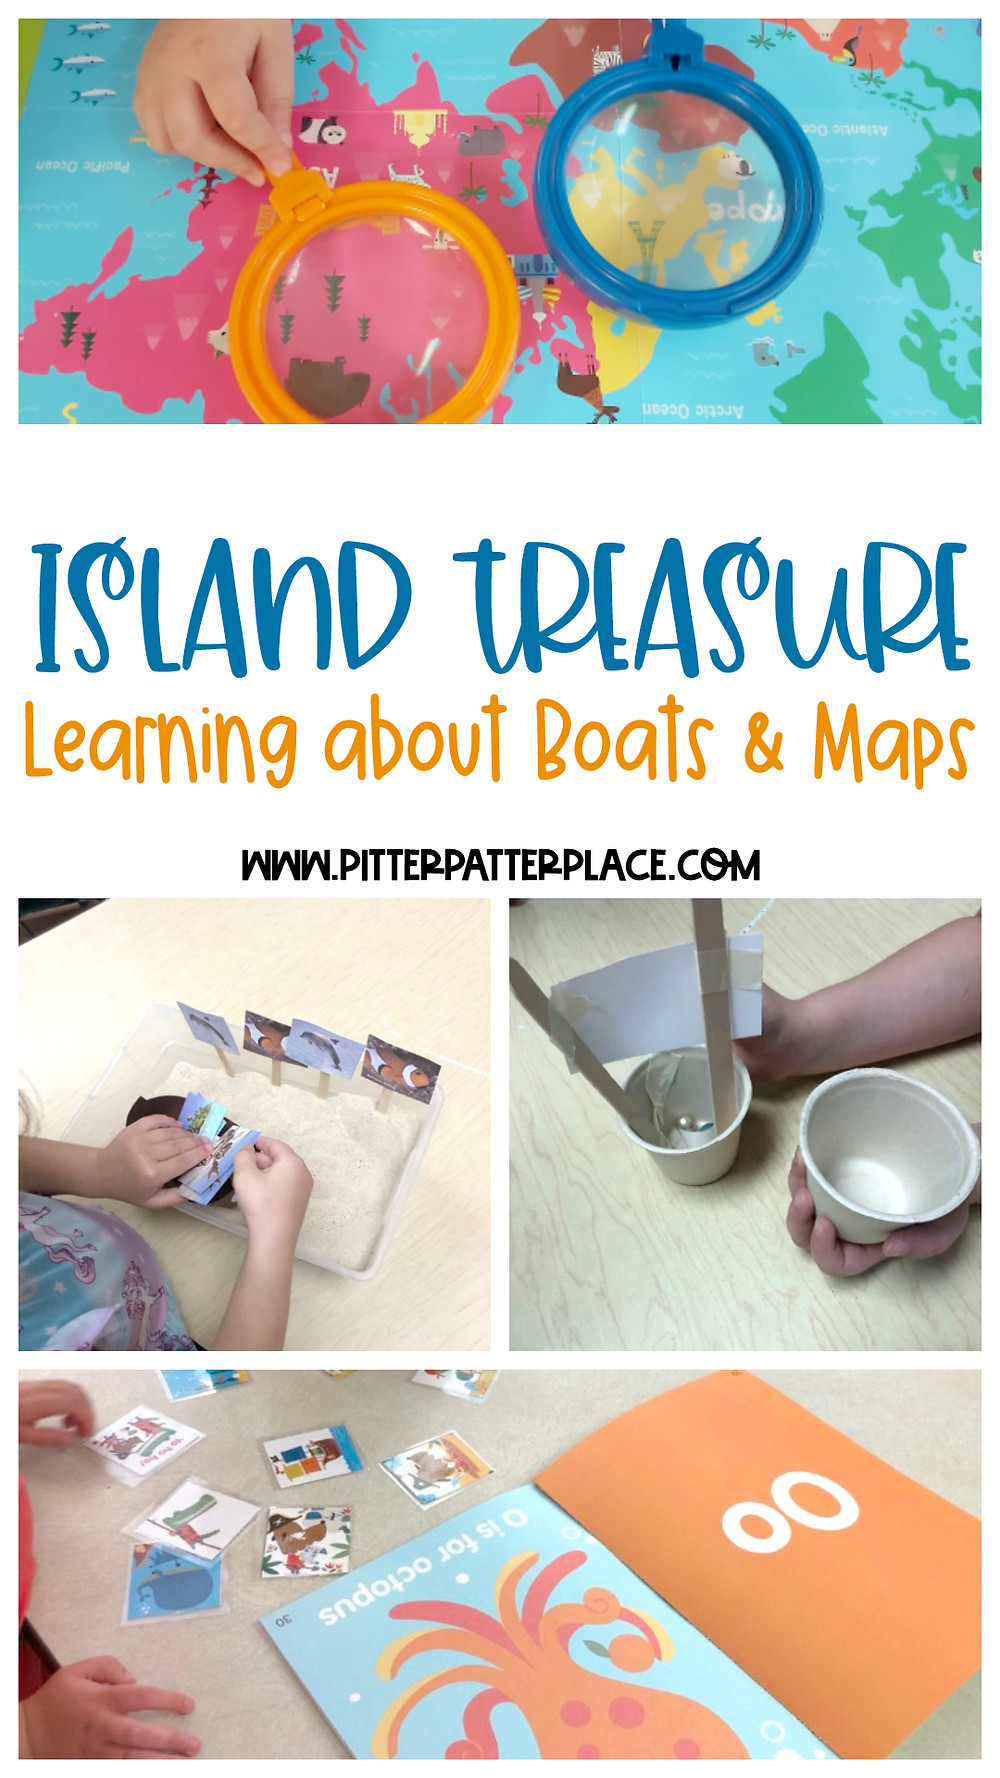 collage of activity images with text: Island Treasure Learning About Boats & Maps